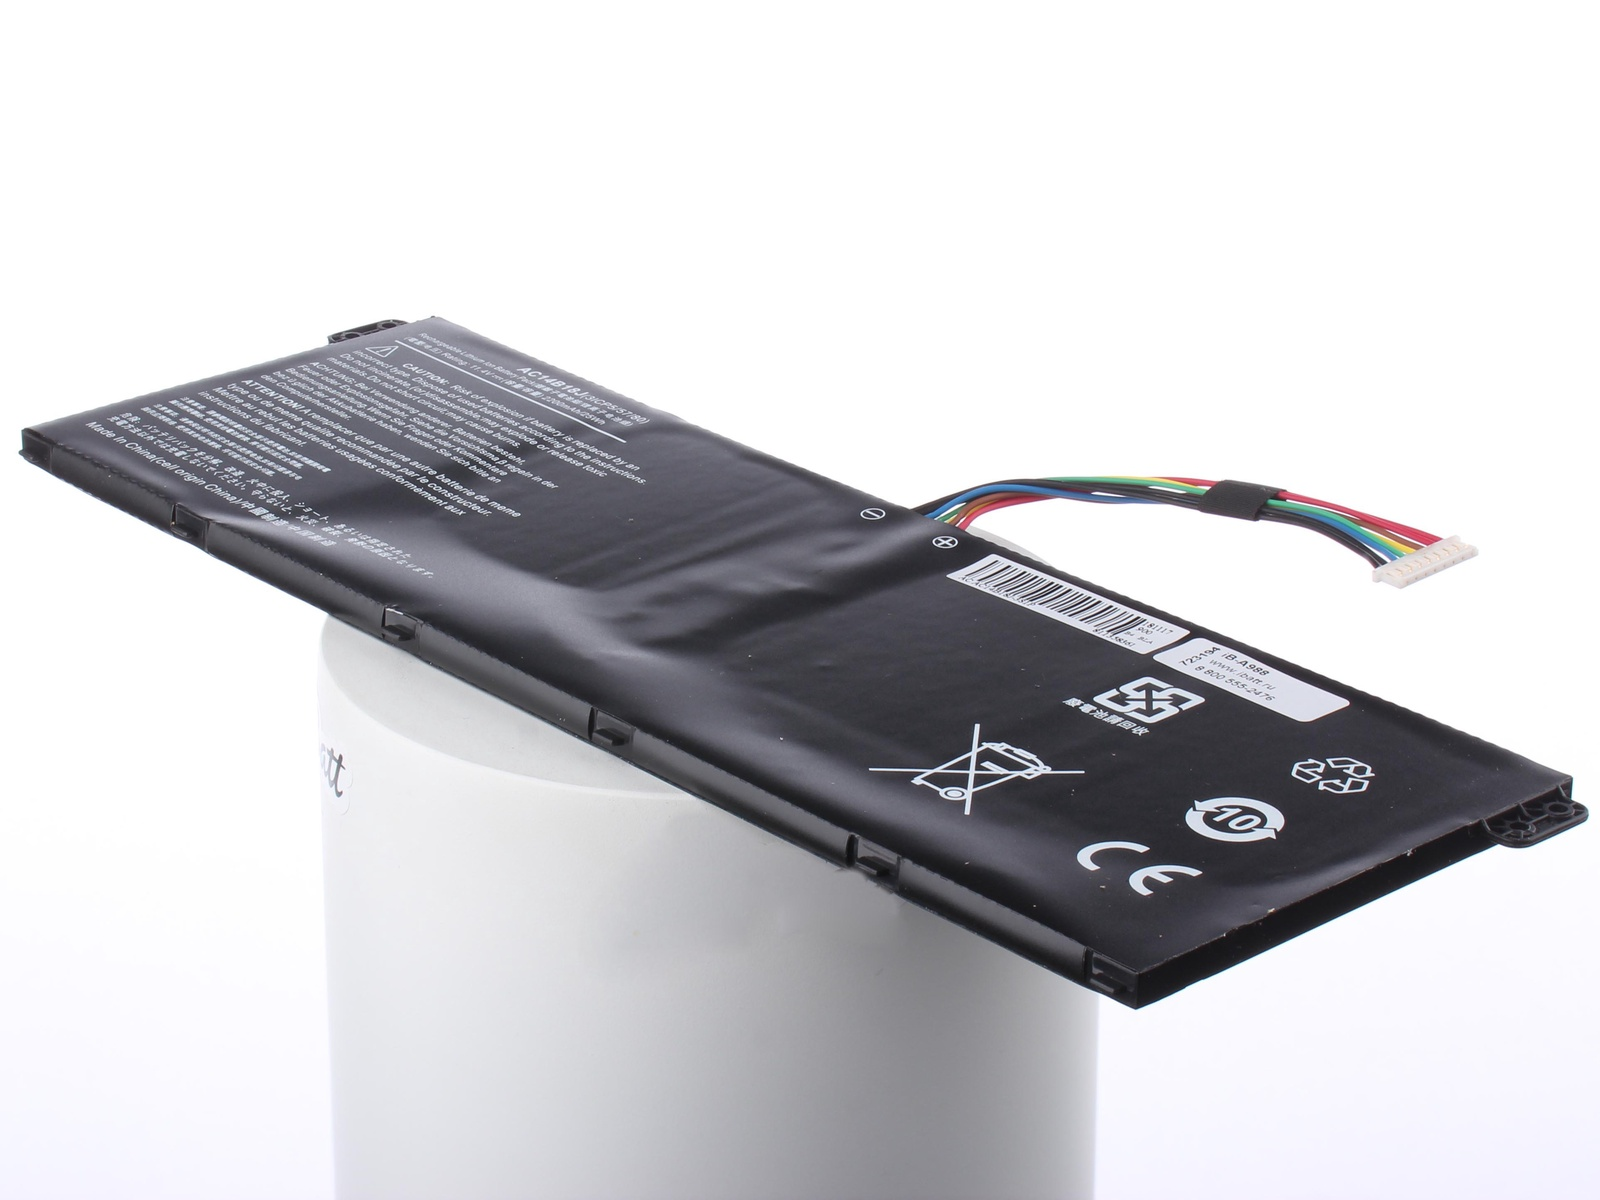 Аккумуляторная батарея iBatt iB-T1-A988 3220mAh для ноутбуков Acer Aspire ES1-531, ASPIRE ES1-131, Aspire ES1-521, Aspire ES1-731, Aspire ES1-331, Aspire ES1-131-C9Y6, Aspire ES1-532G, Aspire ES1-731G, ASPIRE ES1-531-C74X, ASPIRE ES1-131-C1NL, for acer aspire es1 531 n15w4 screen matrix for laptop 15 6 edp 30 pin led display